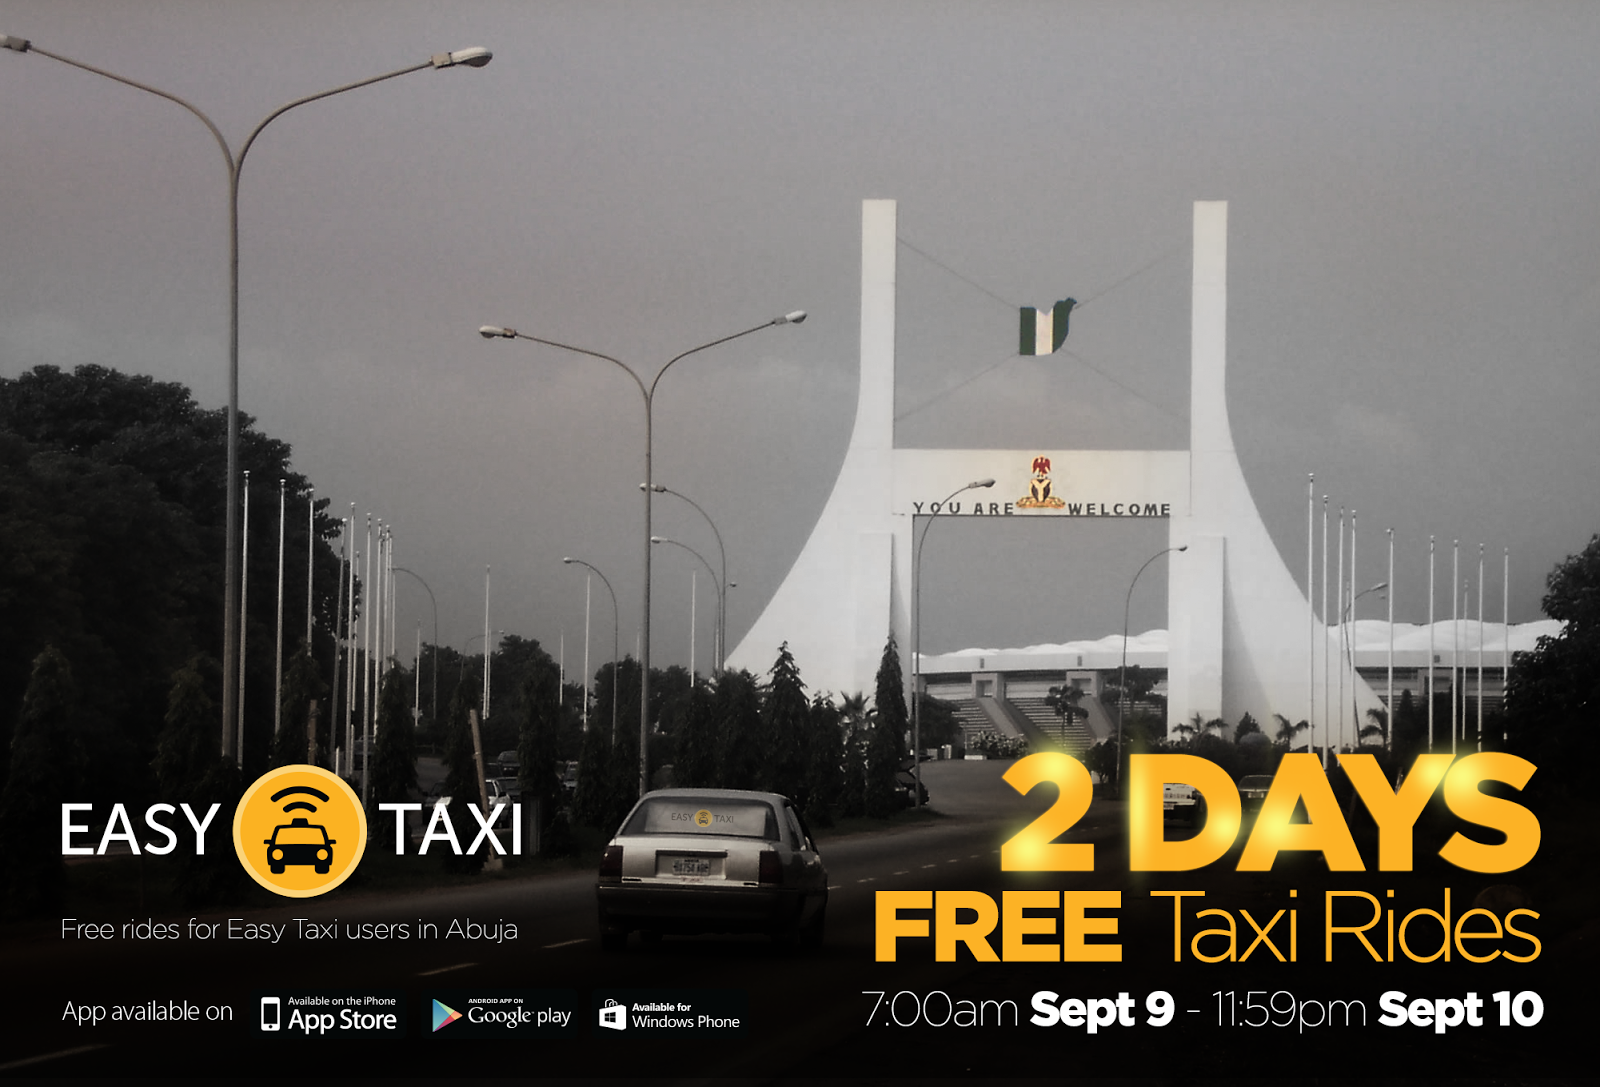 Easy Taxi promotes safe commuting in Abuja by offering free rides